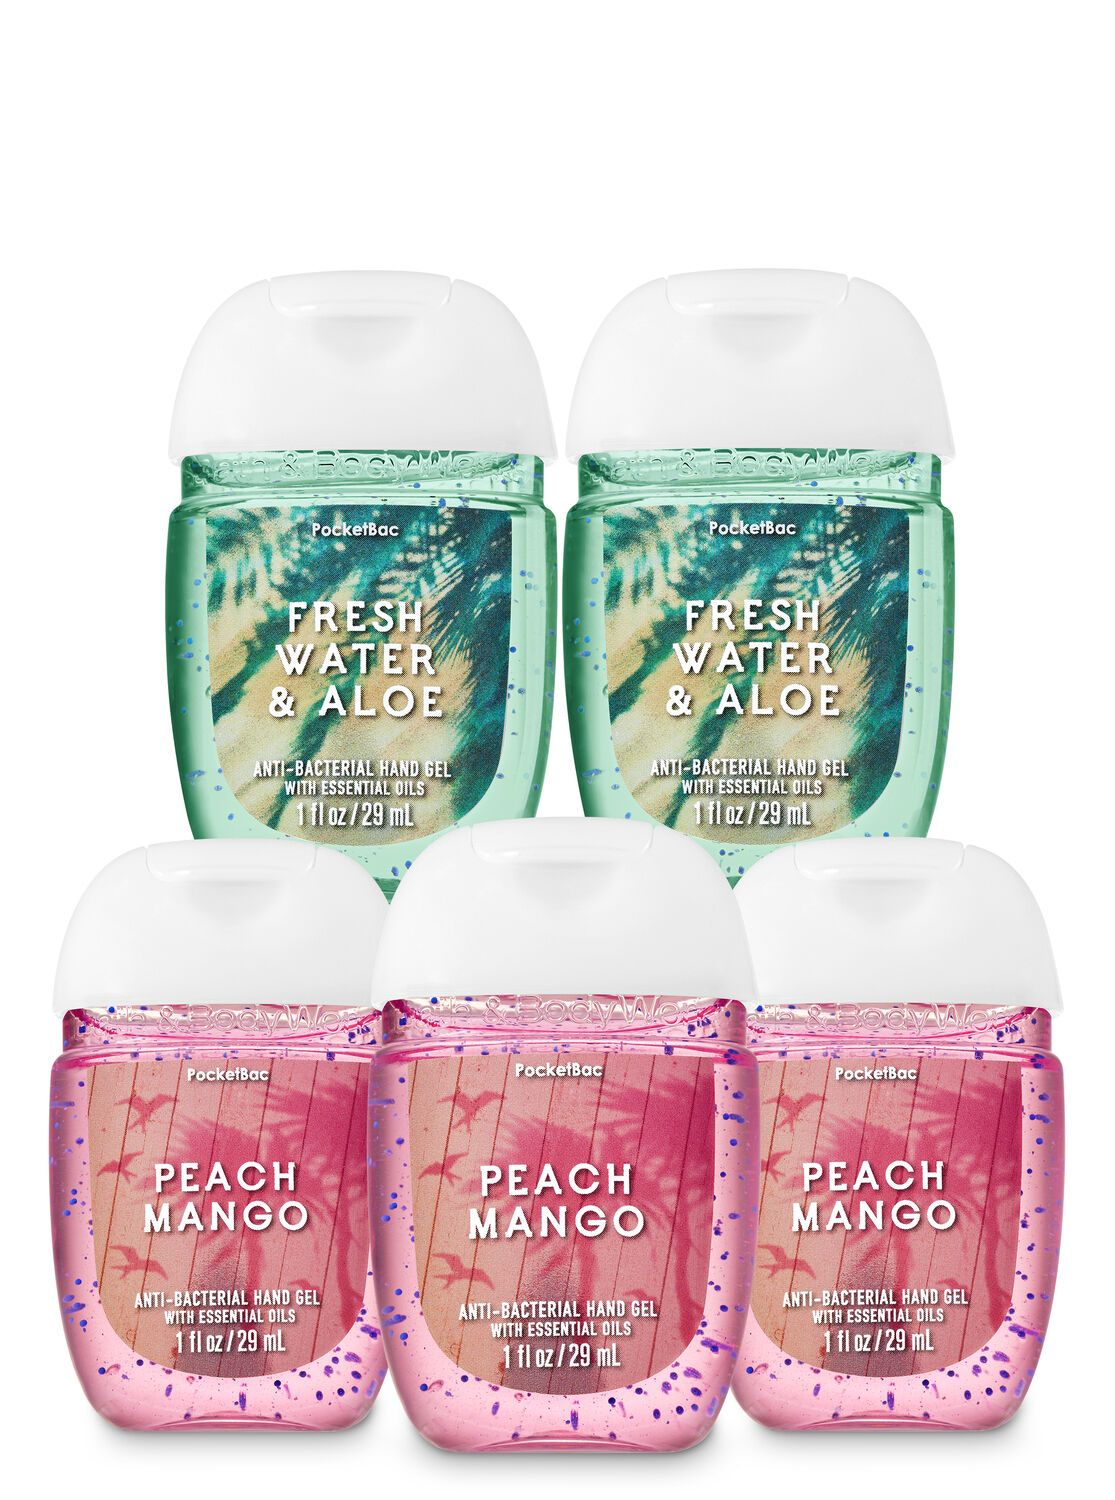 Bath Body Works Good Vibes Pocketbac Hand Sanitizers 5 Pack